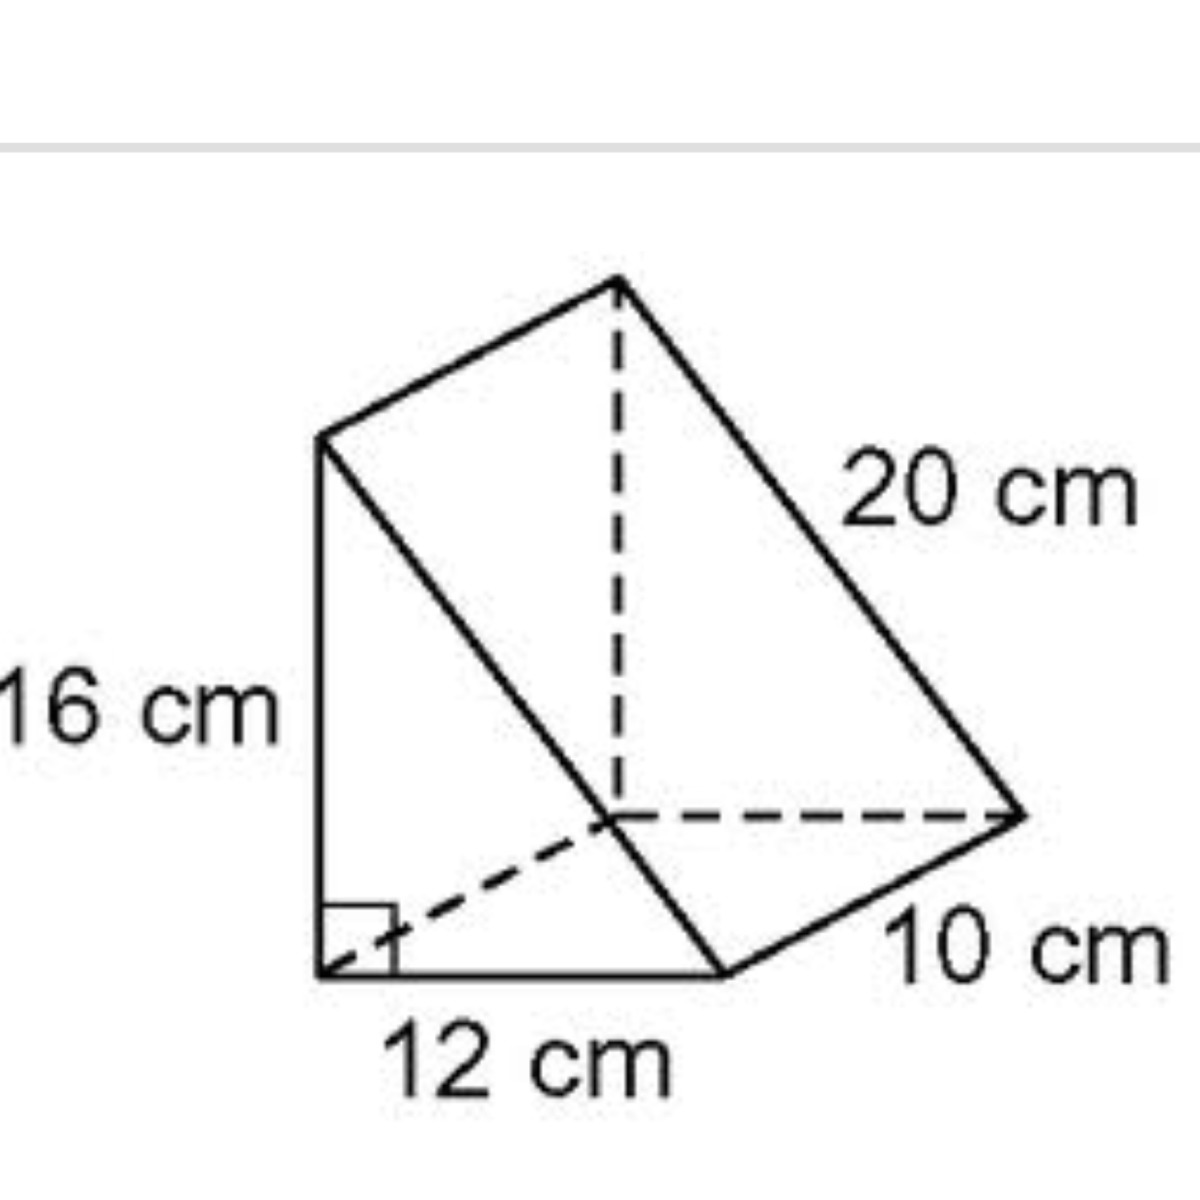 What Is The Volume Of The Triangular Prism